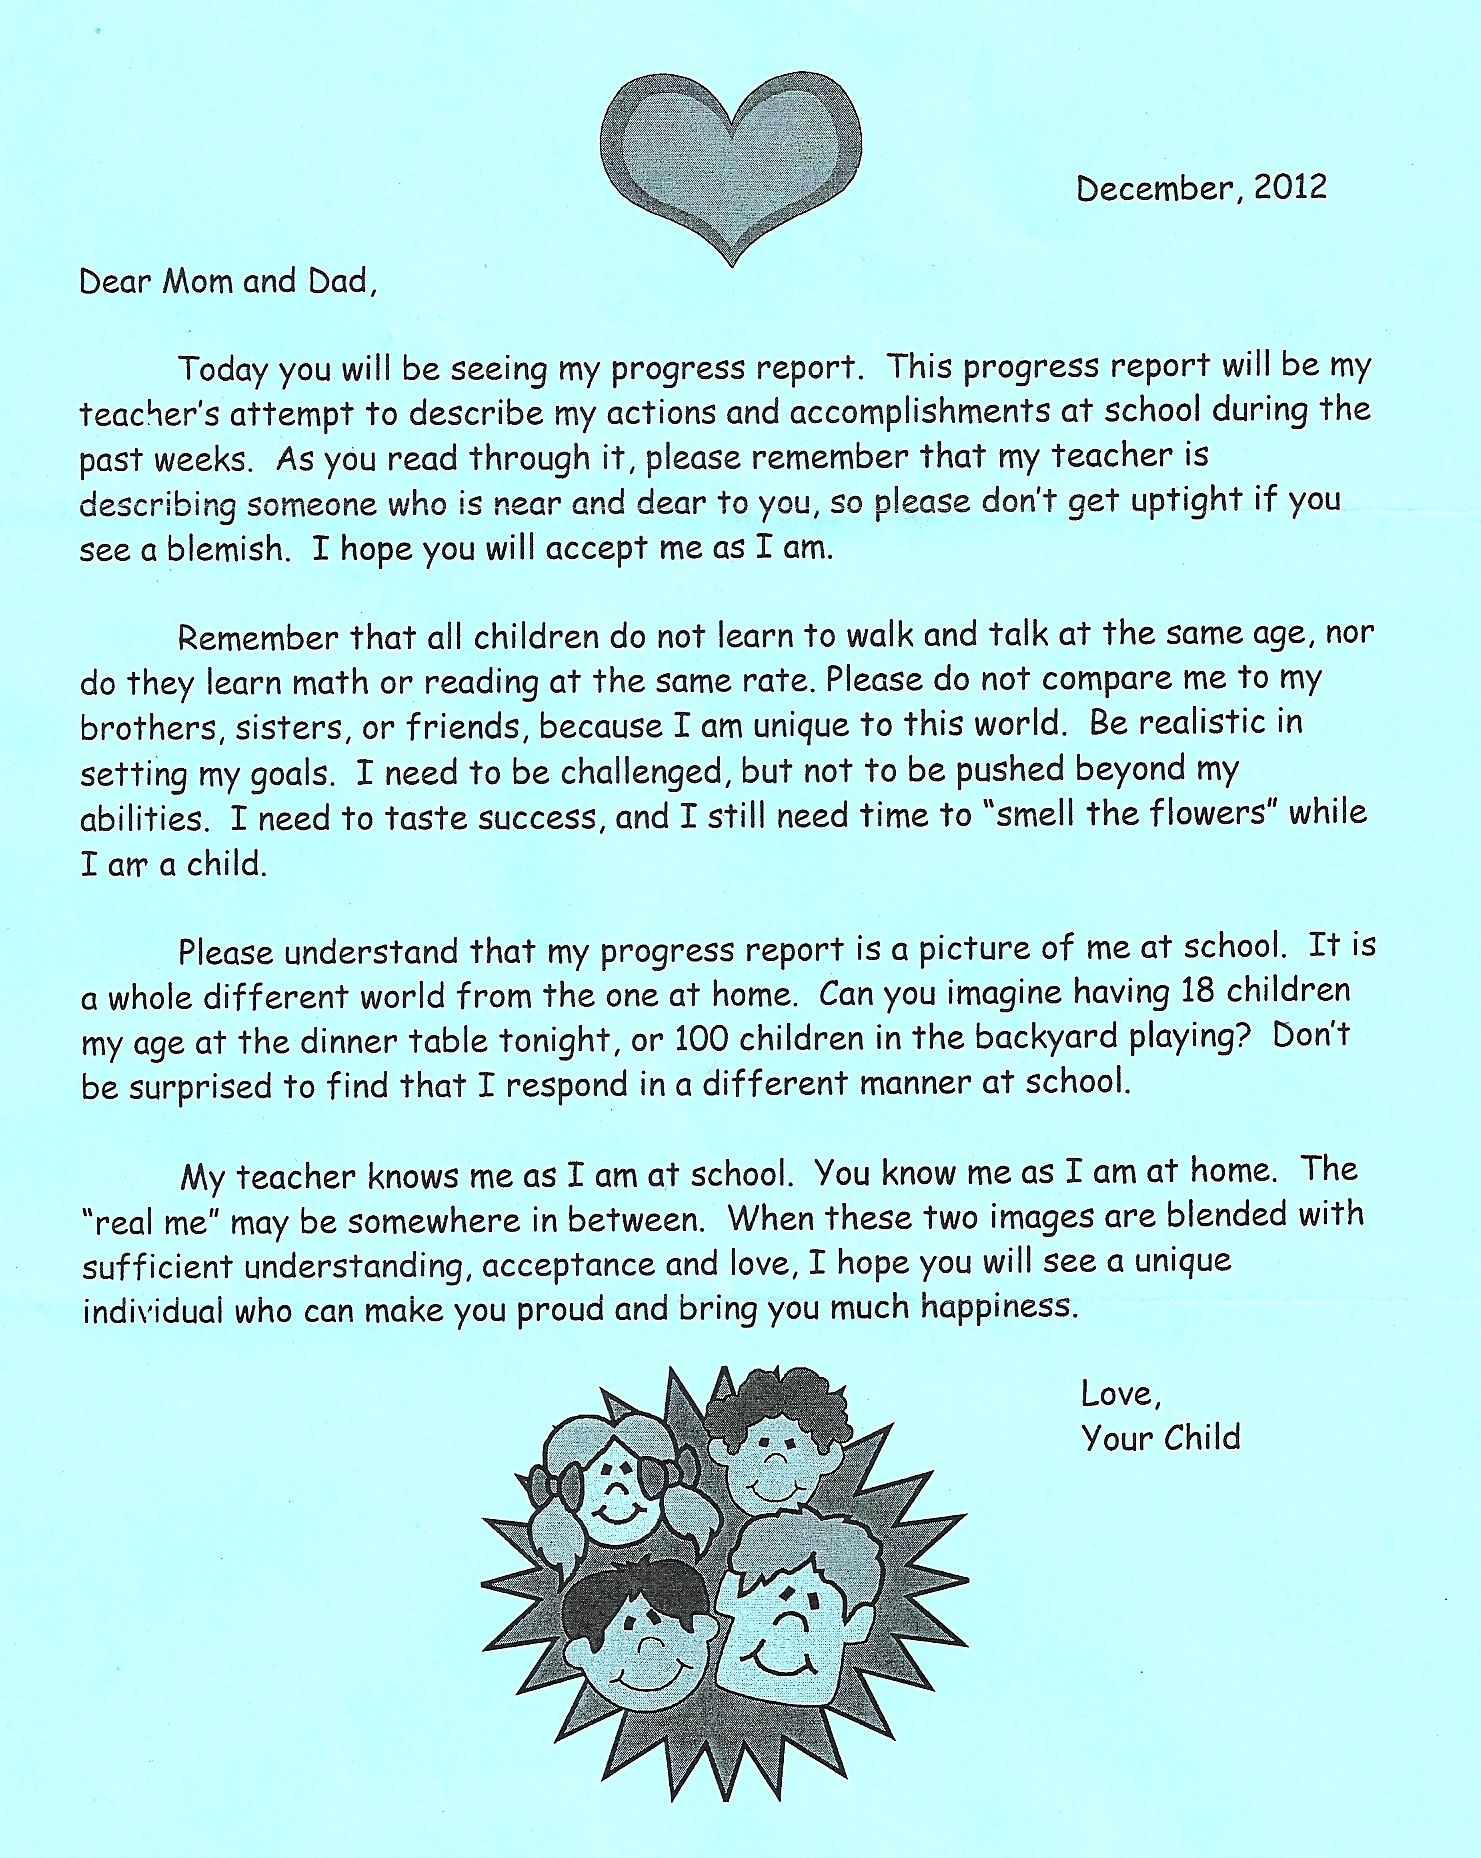 A Letter From Your Child This Came With A Report Card